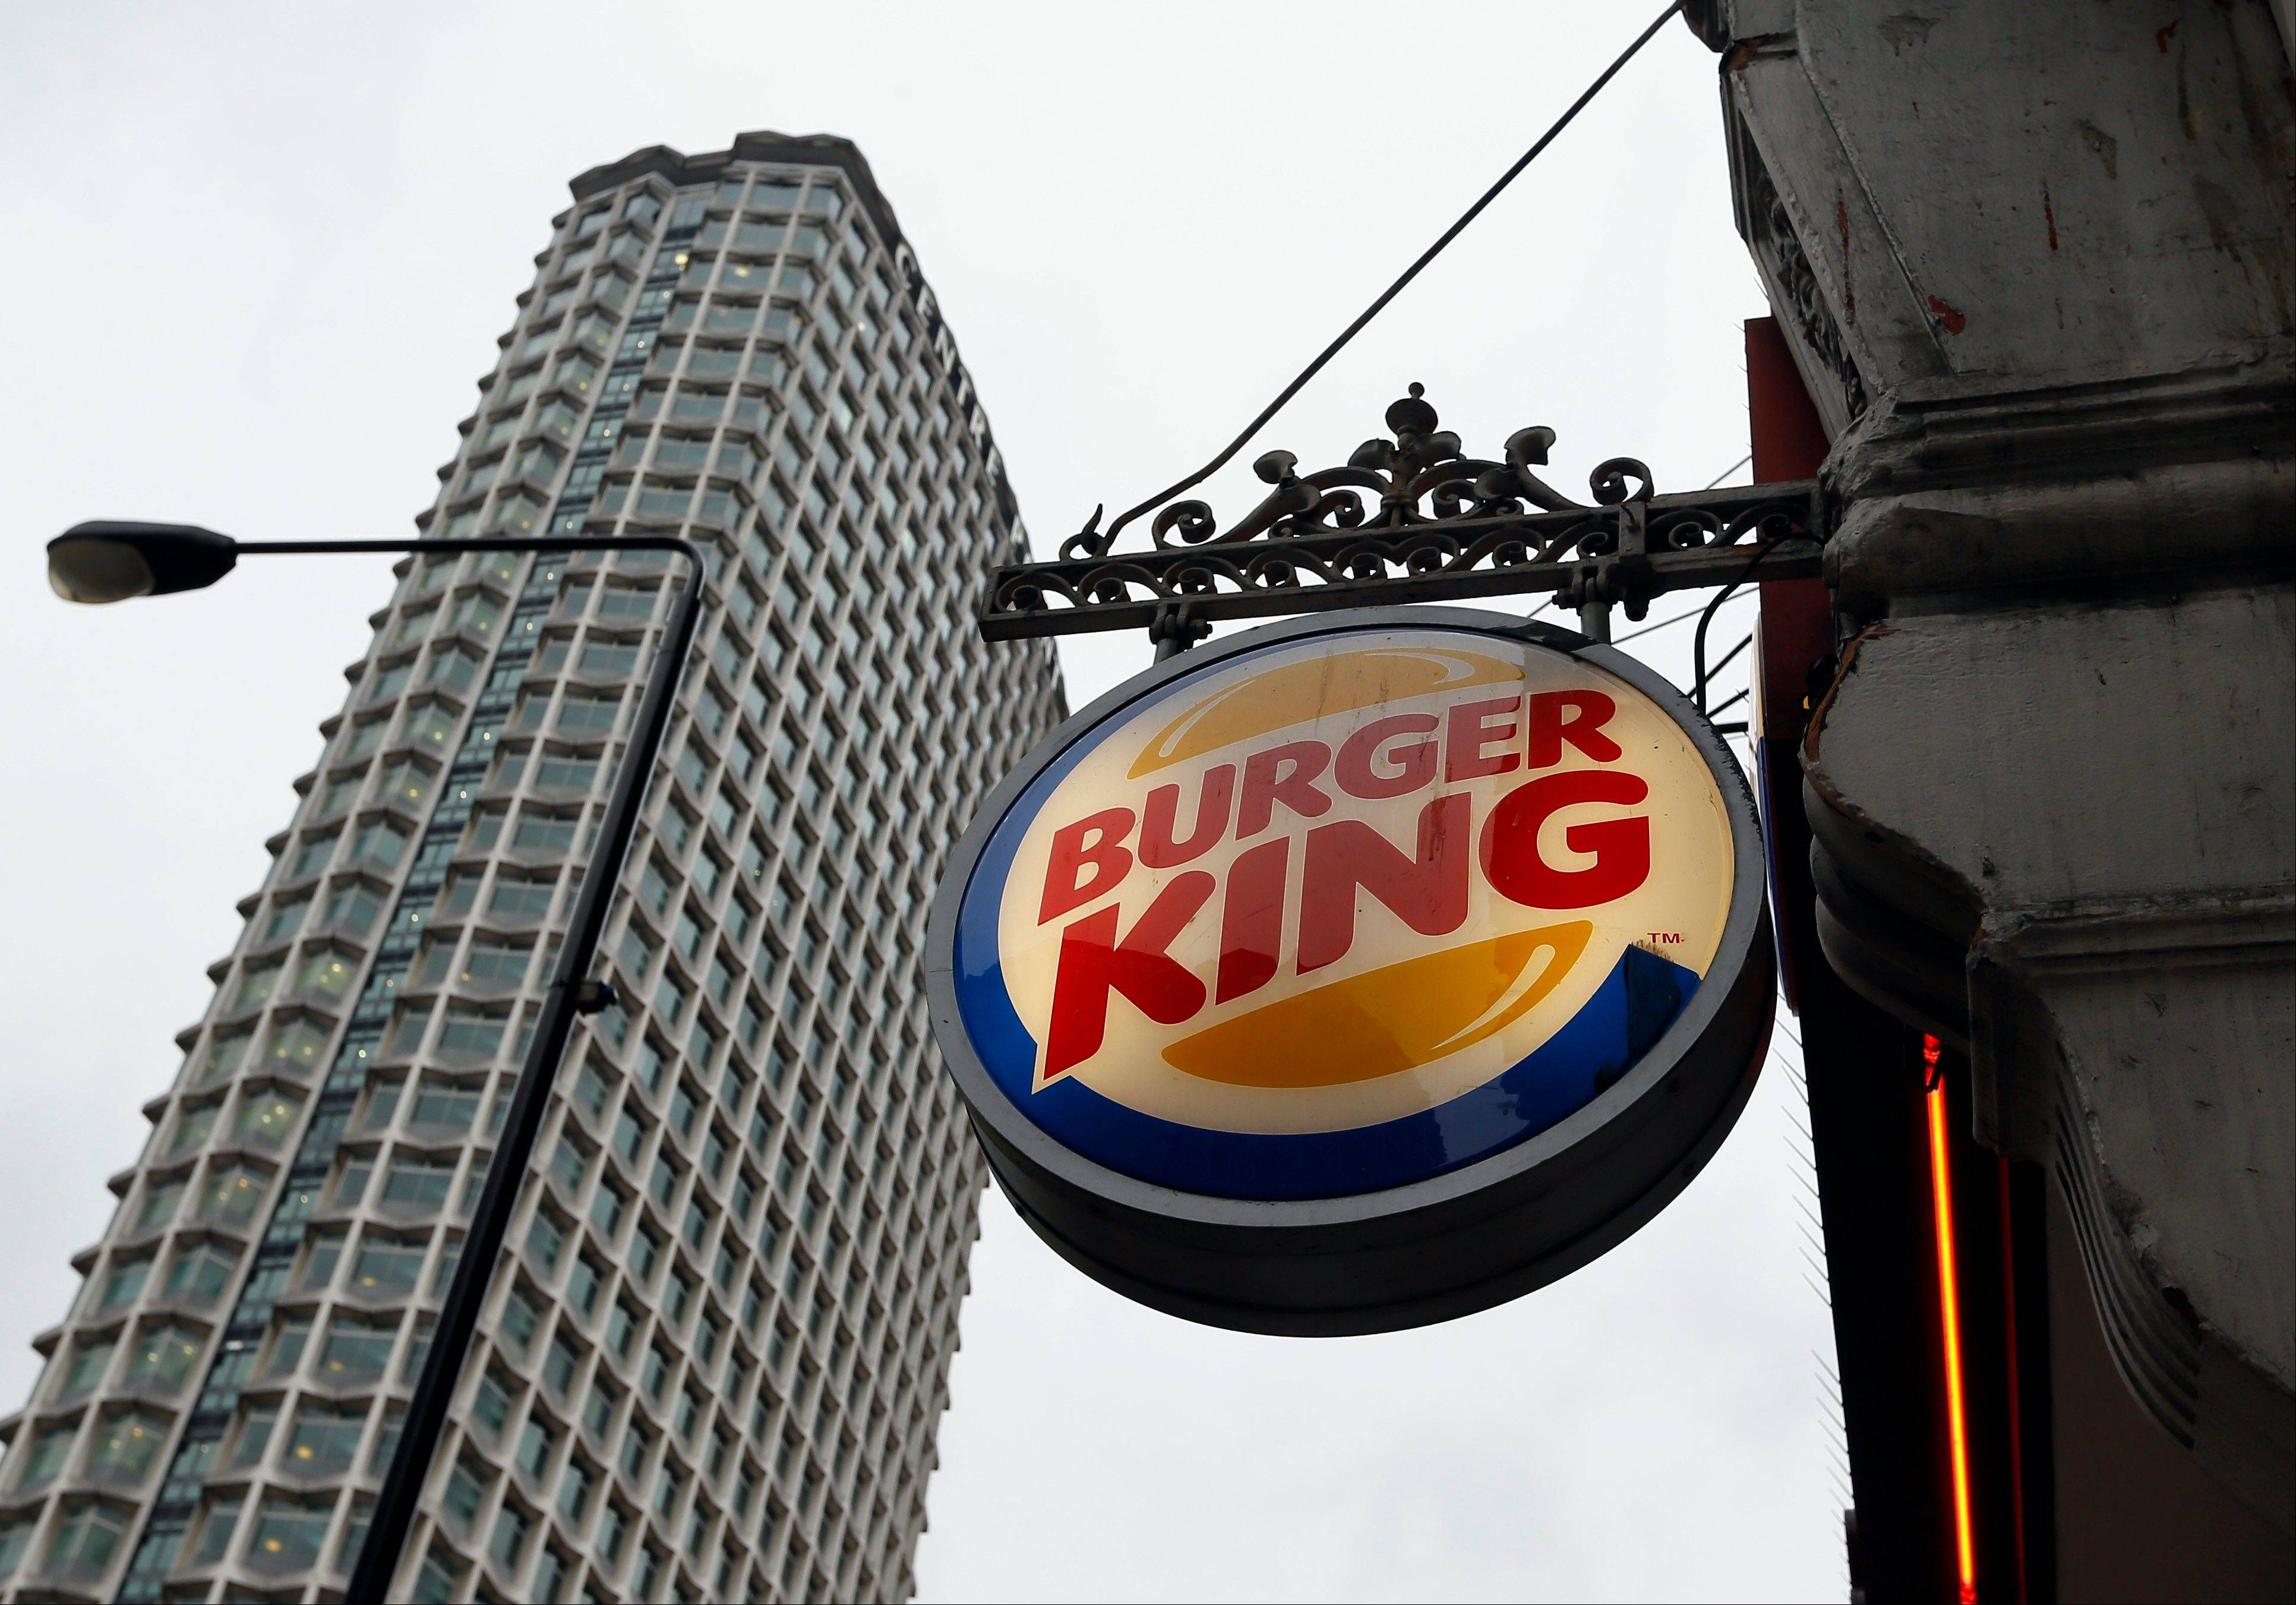 A sign hangs at a branch of Burger King in central London, Thursday, Jan. 24, 2013. Burger King says it has stopped buying beef from an Irish supplier whose patties in Britain and Ireland were found to contain traces of horsemeat.